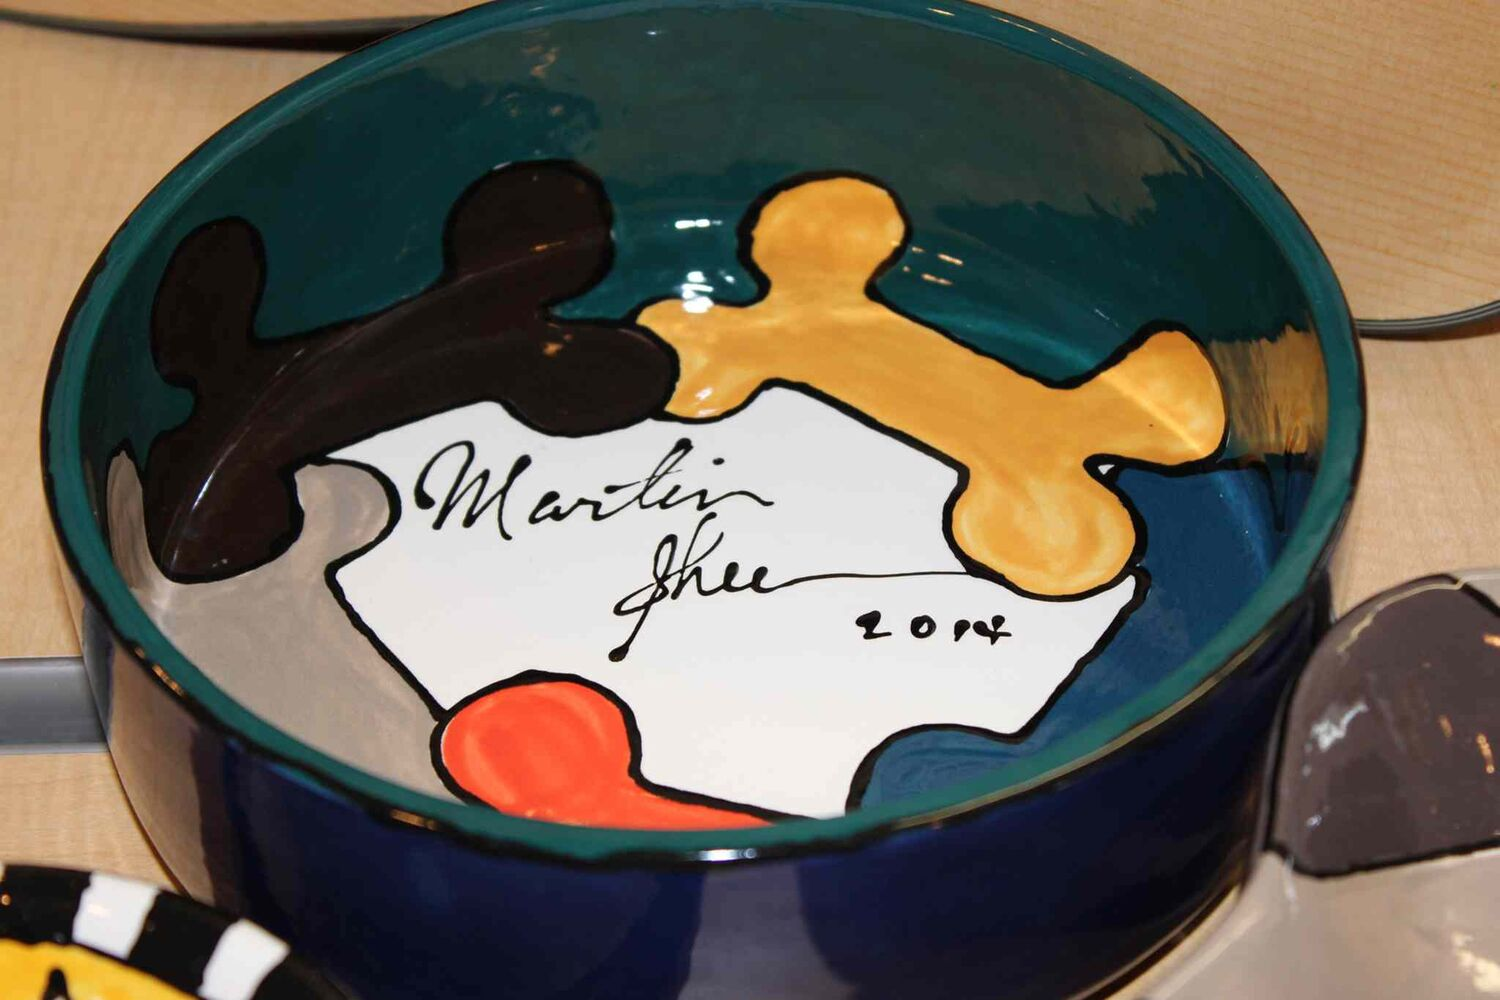 WHS ceramic pet bowl signed by Martin Sheen.  (Steph Crosier)